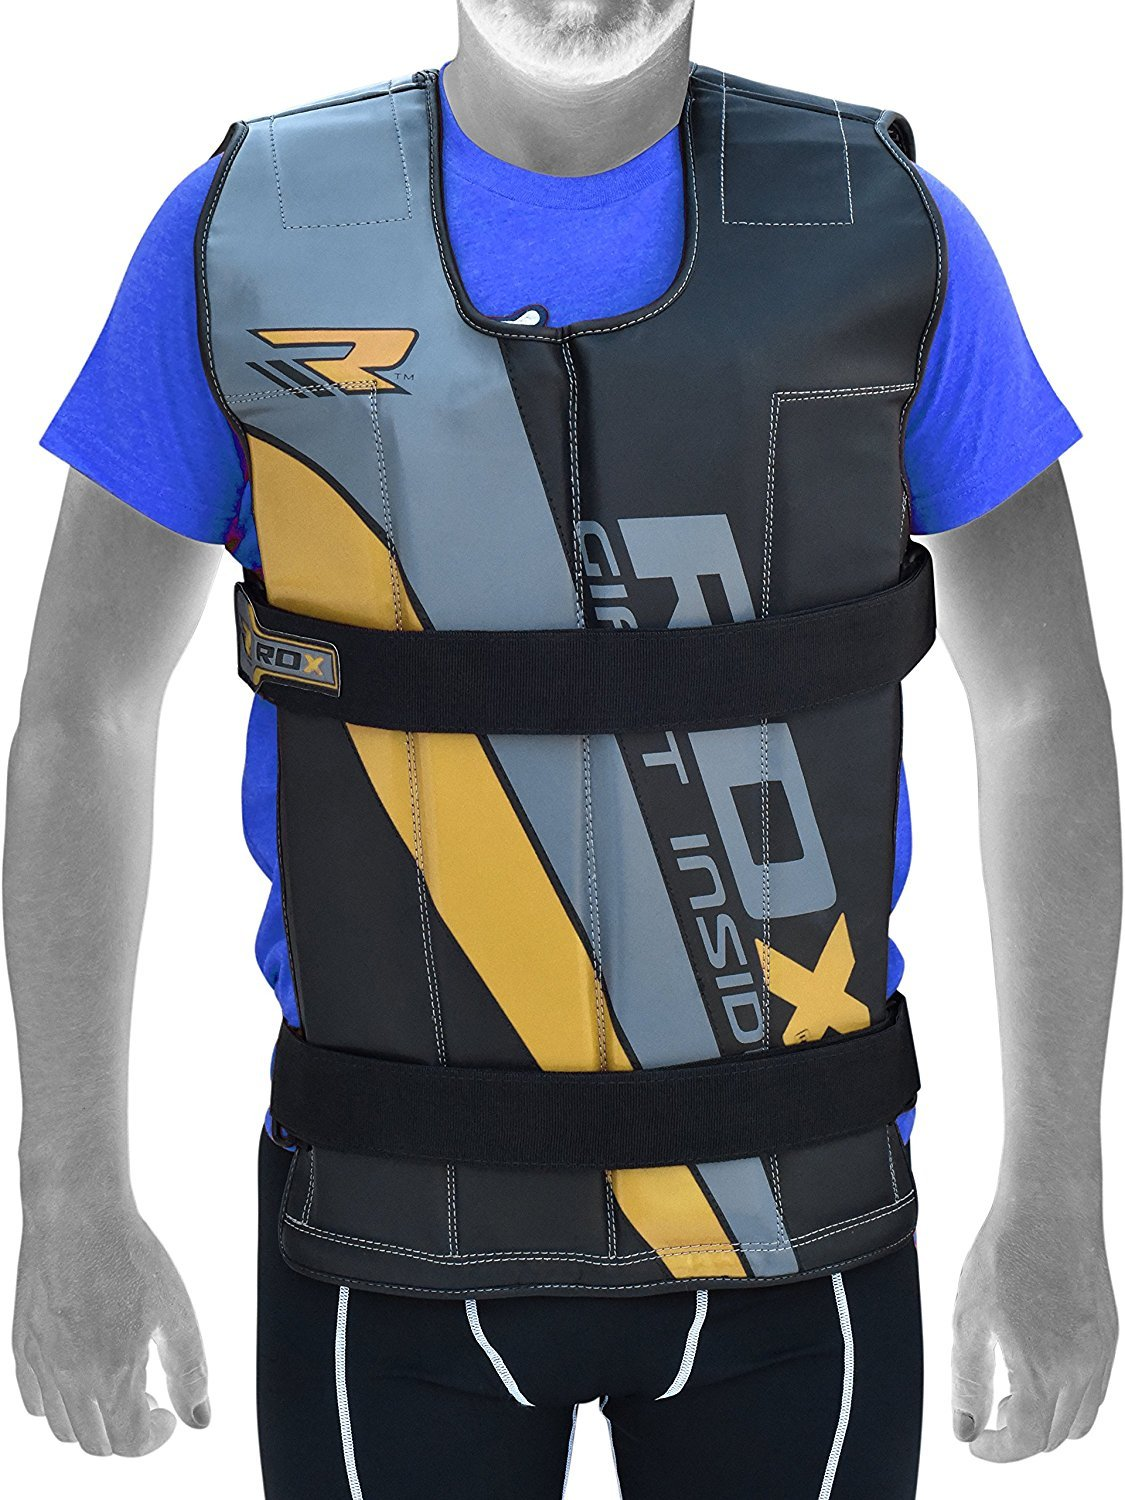 person wearing RDX weighted vest